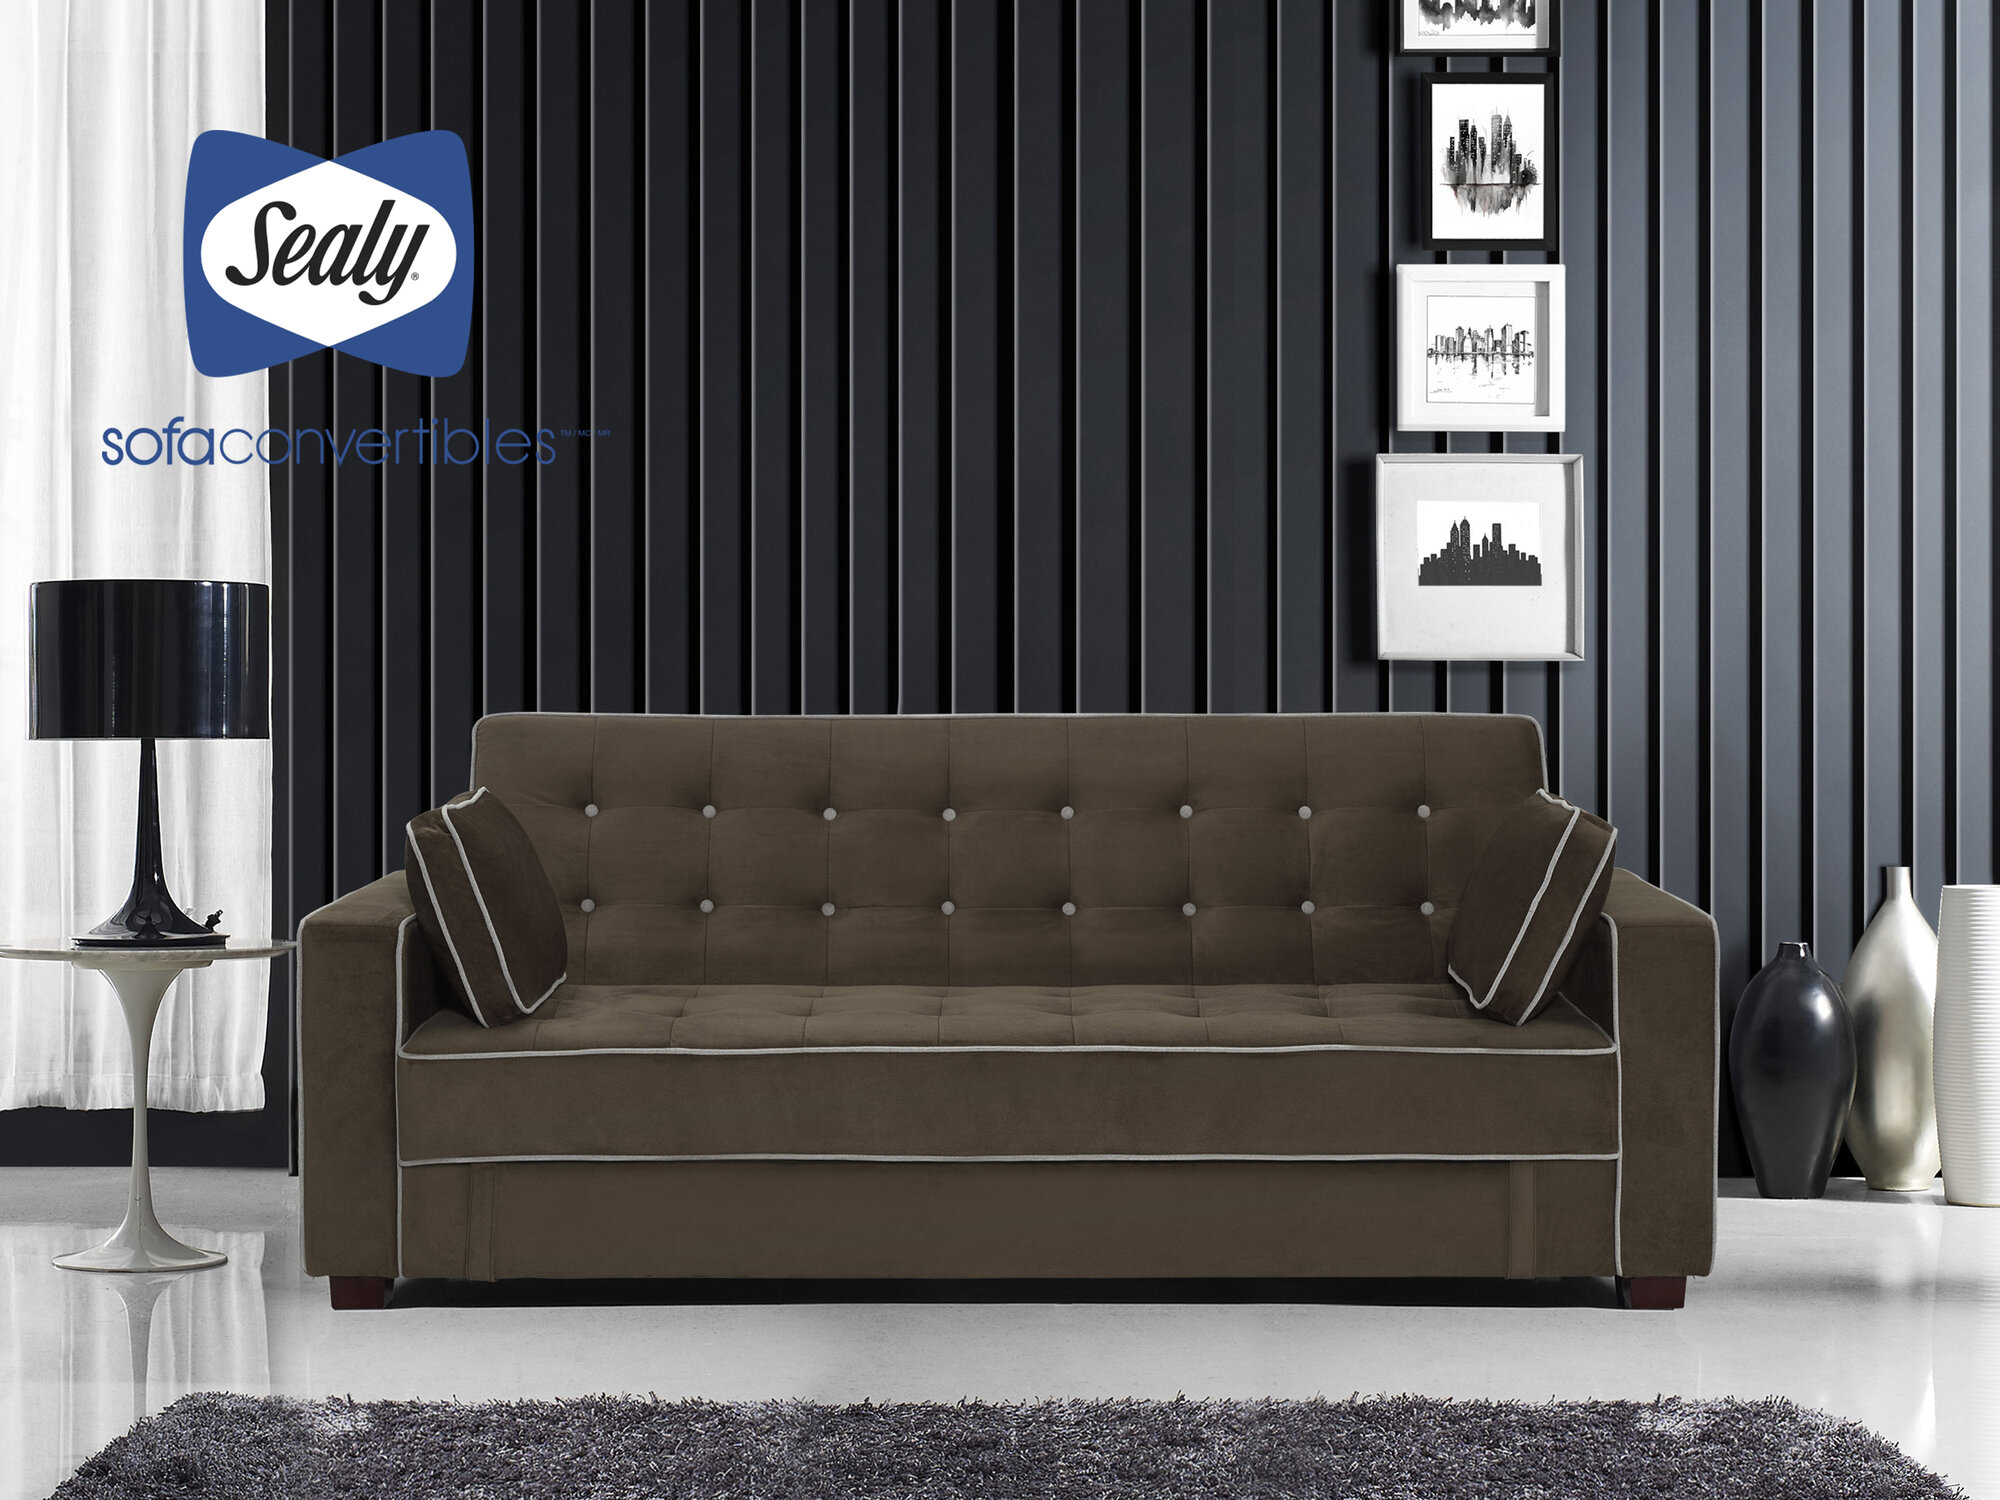 - Sealy Belize Sofa Convertible With Storage By Sealy Heavenly Dark